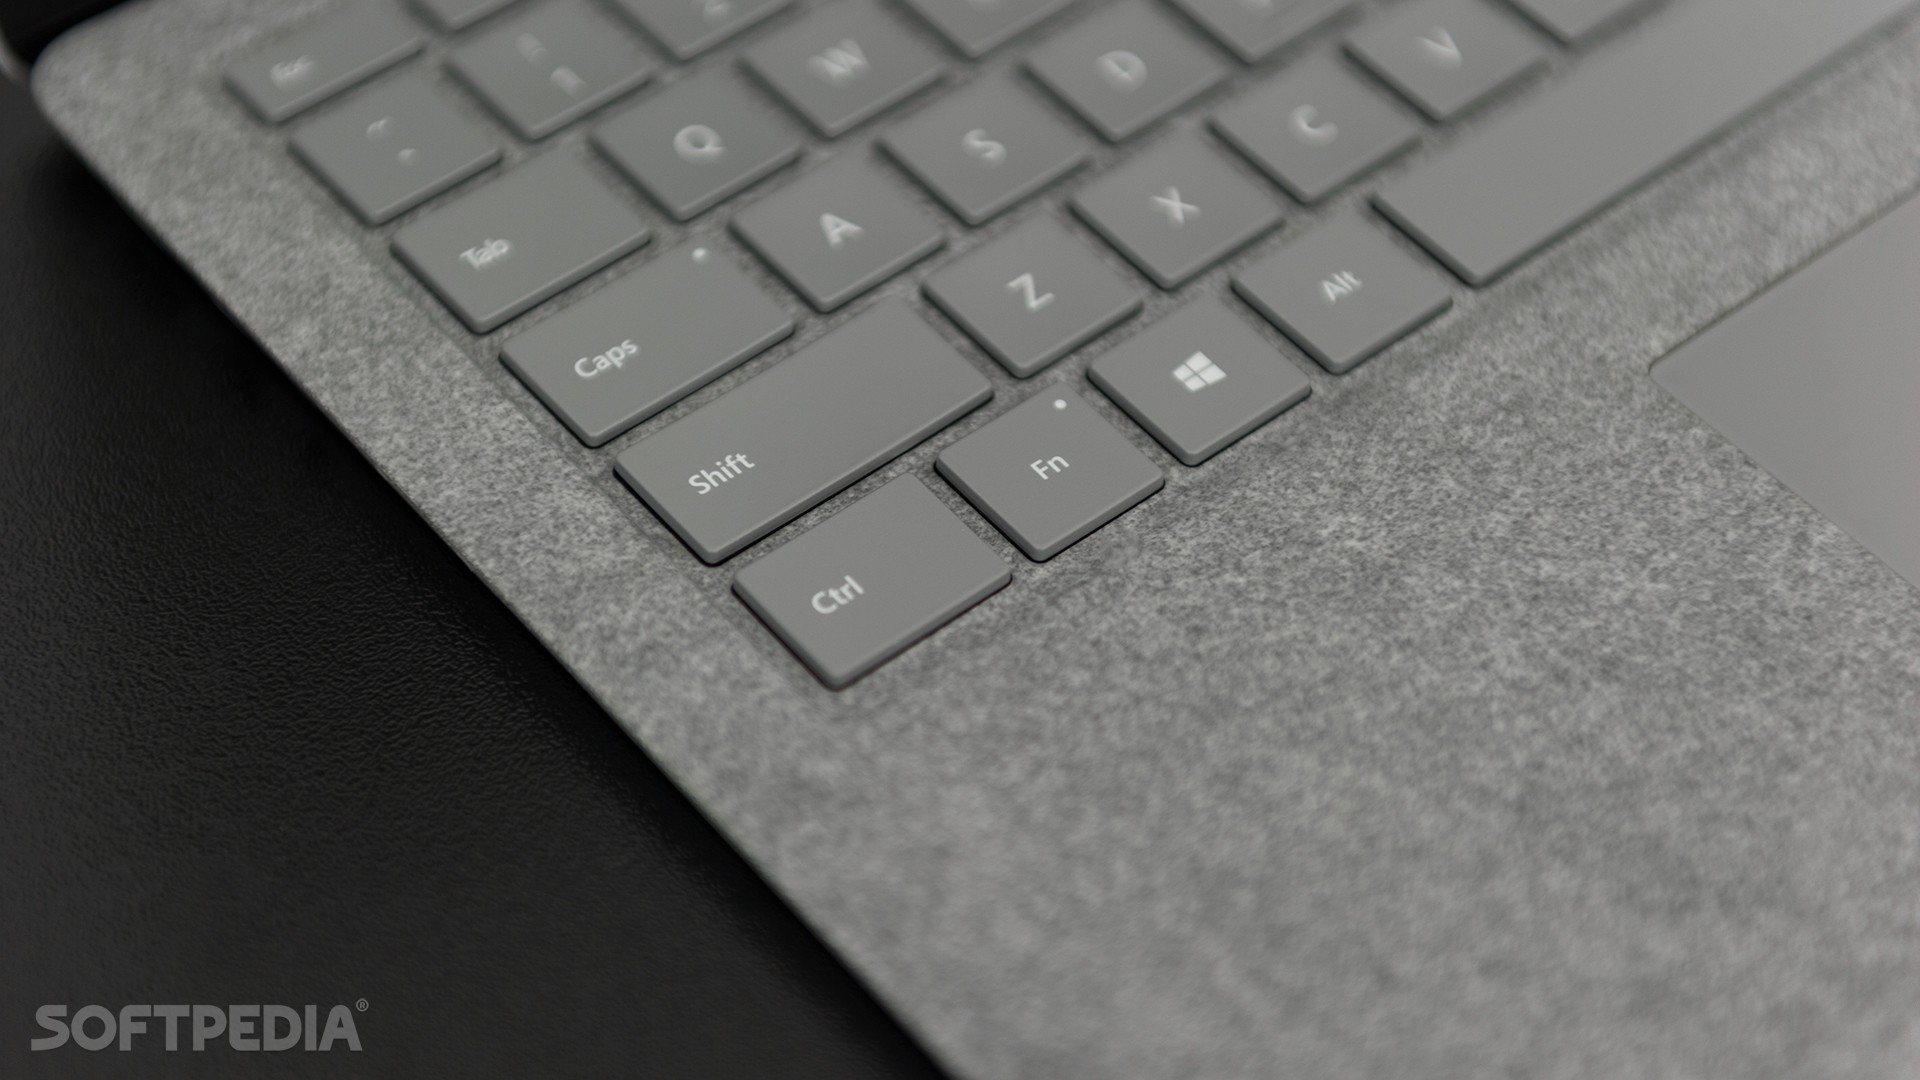 How to Launch Any Windows 10 App with a Keyboard Shortcut